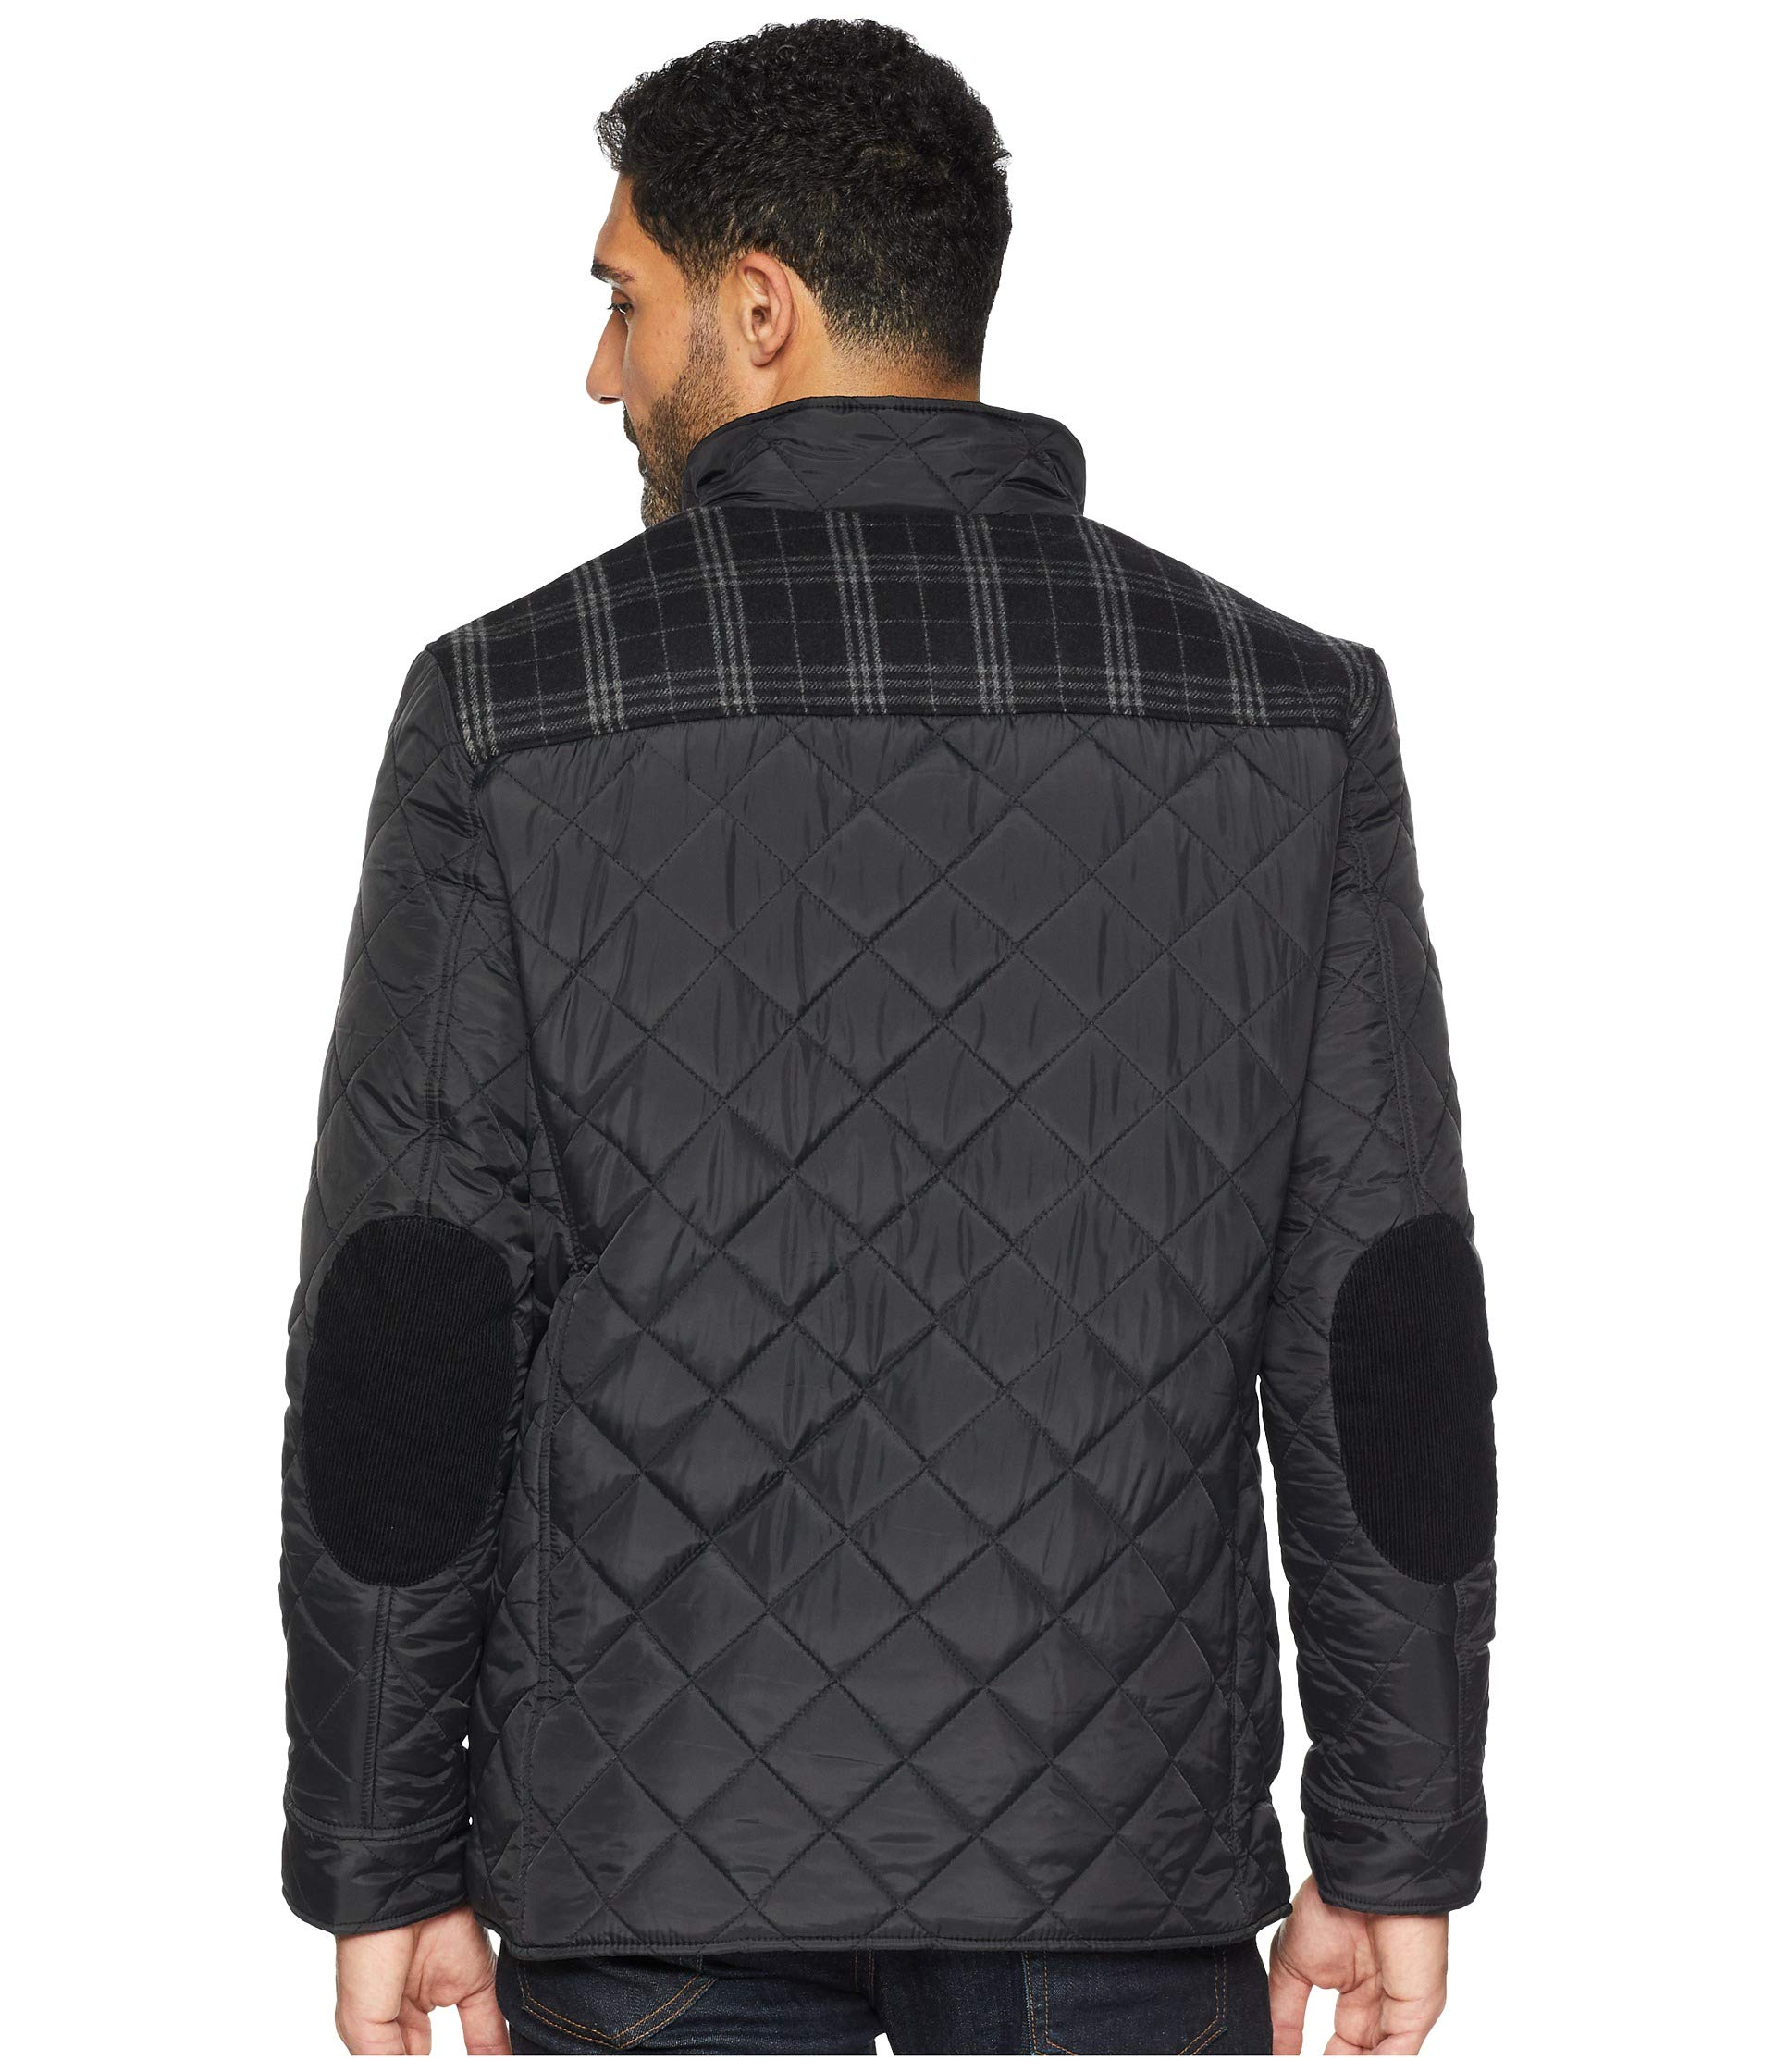 Jacket Cole Media Black Haan Quilted Multi Mixed pockets w6qYnr67